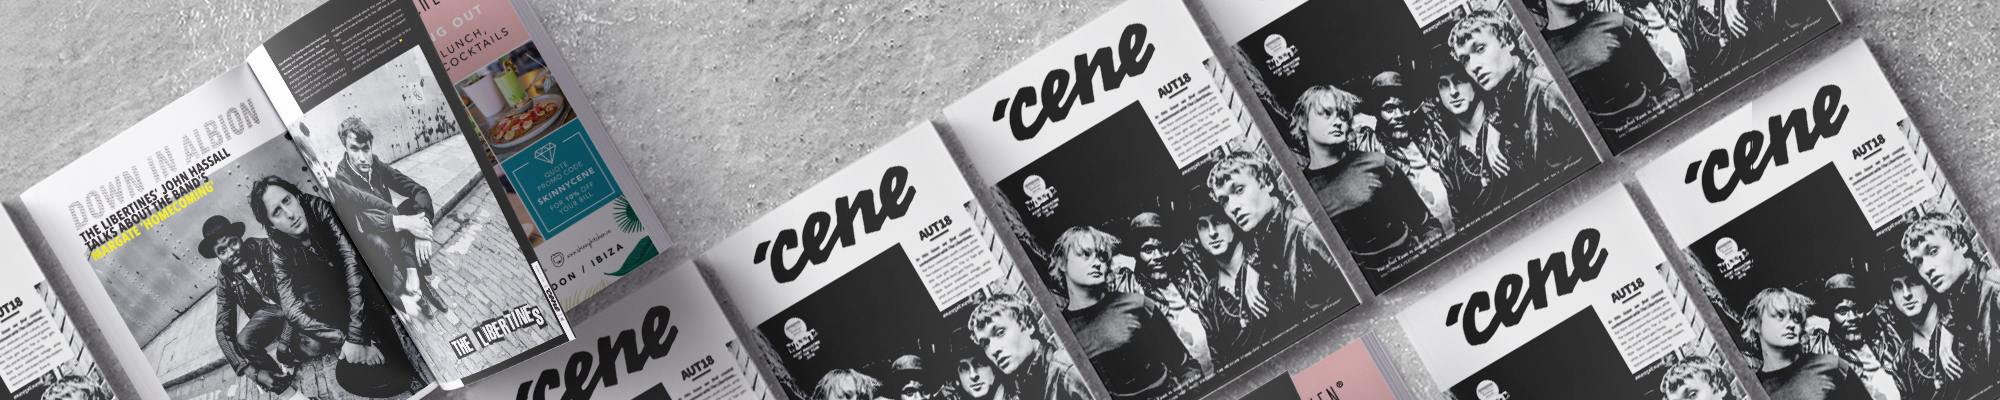 cene-magazine-AUT18-issue-keep-it-kent-low.jpg